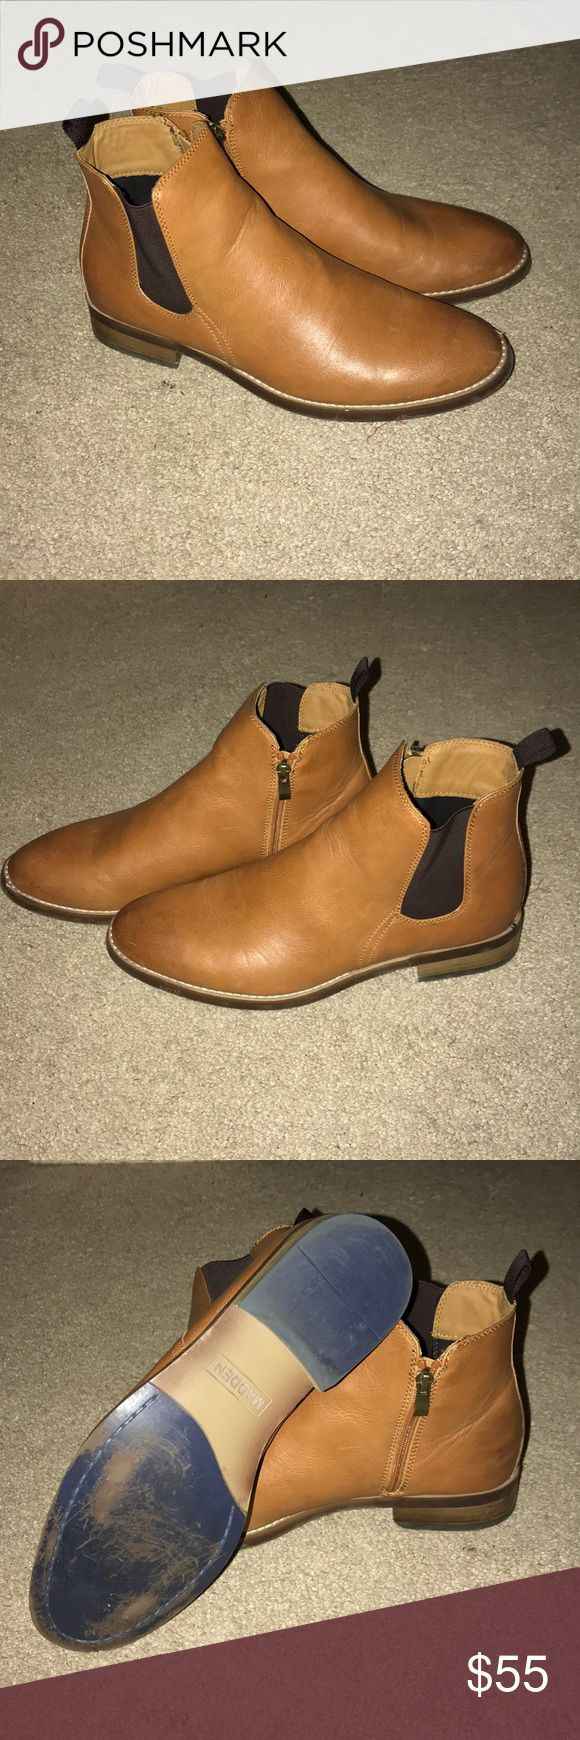 Chelsea Boots Men's Leather Chelsea Boots Color: Camel Steve Madden Shoes Boots